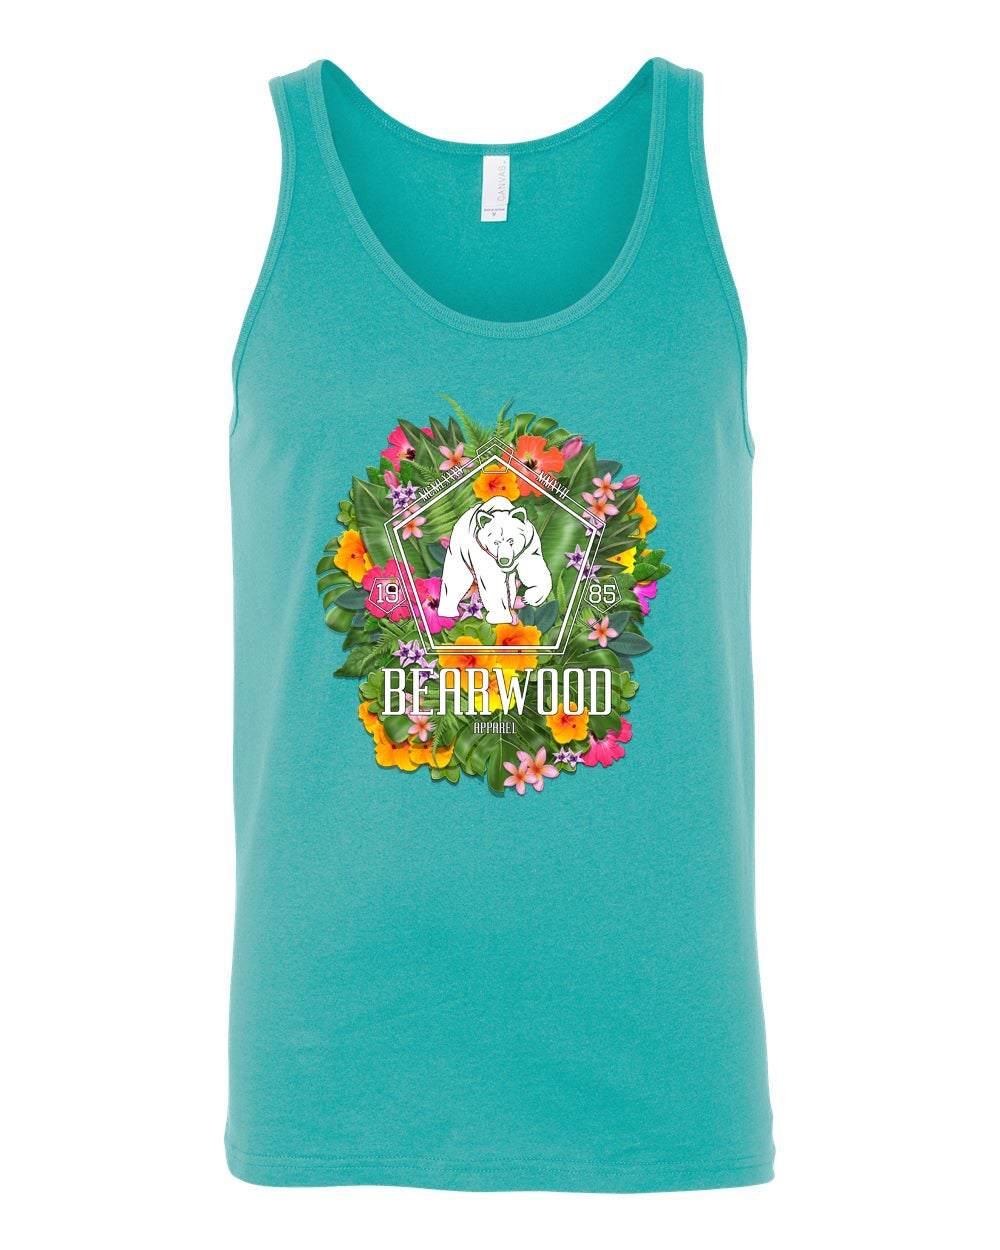 Image of Teal Floral BW Teal Tanktop -  BC 3480